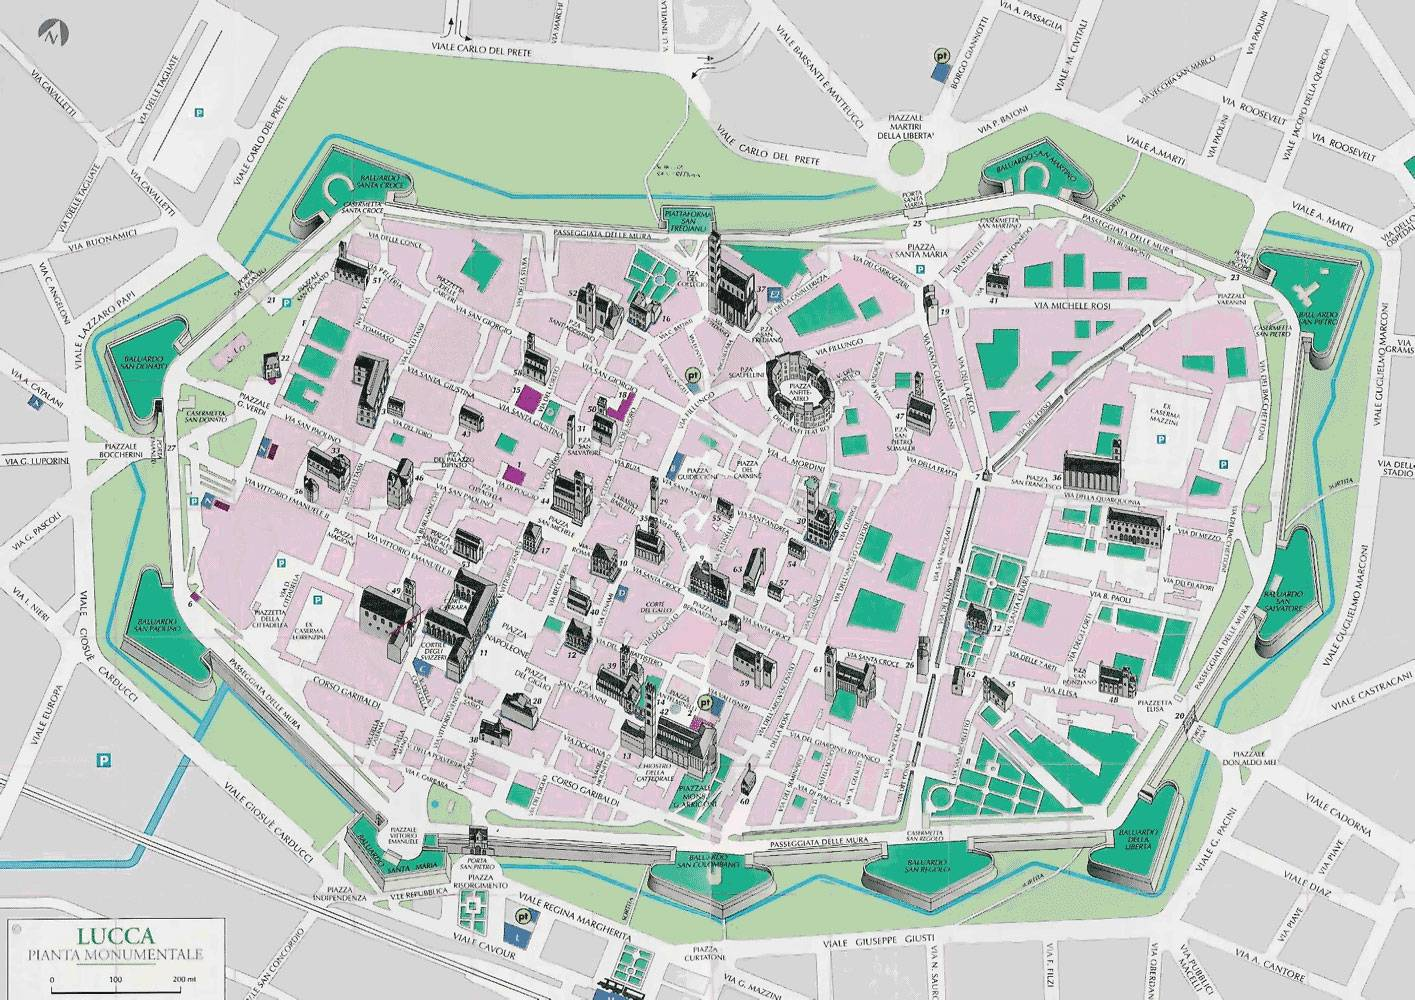 Cartina Italia Lucca.Large Lucca Maps For Free Download And Print High Resolution And Detailed Maps